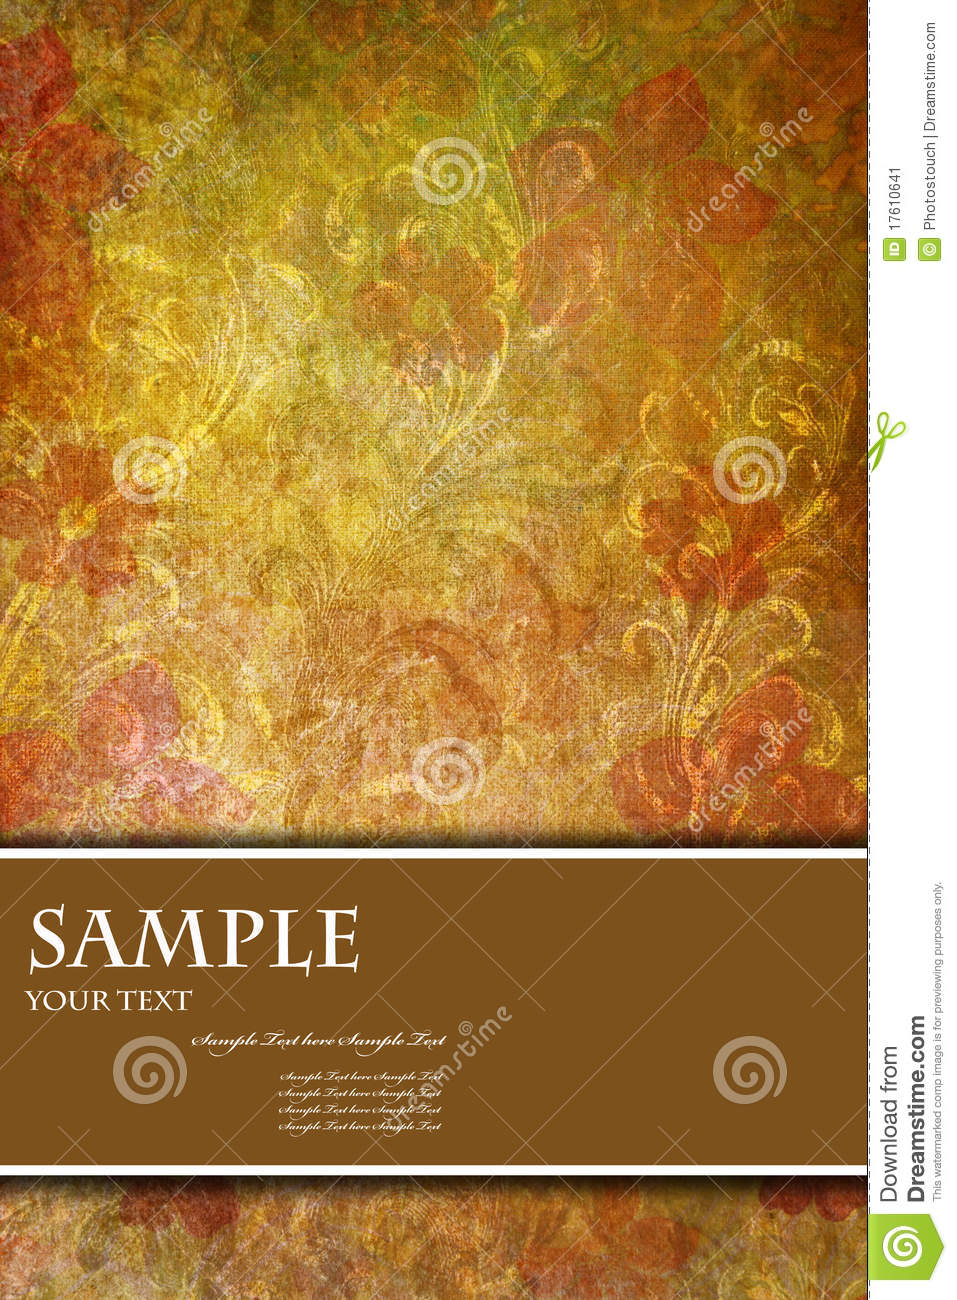 Book Cover Illustration Rates : Abstract background for card or book cover stock image